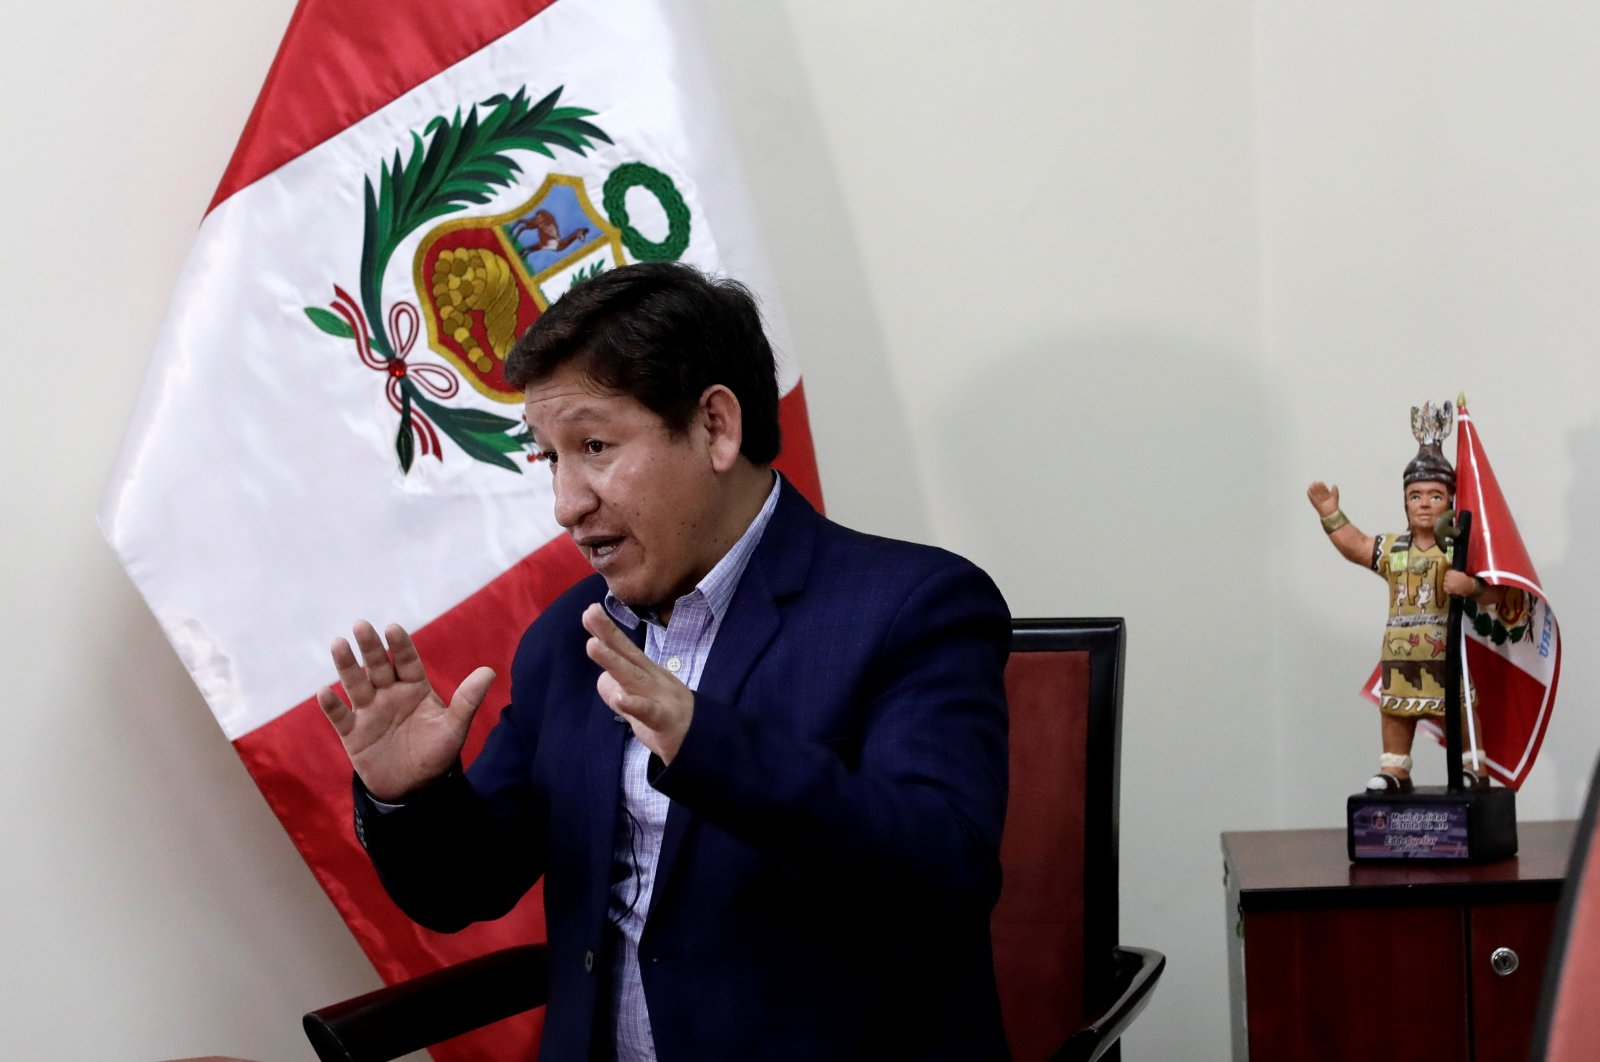 Peru's Prime Minister Guido Bellido speaks during an interview with Reuters in Lima, Peru, Aug. 7, 2021. (Reuters Photo)